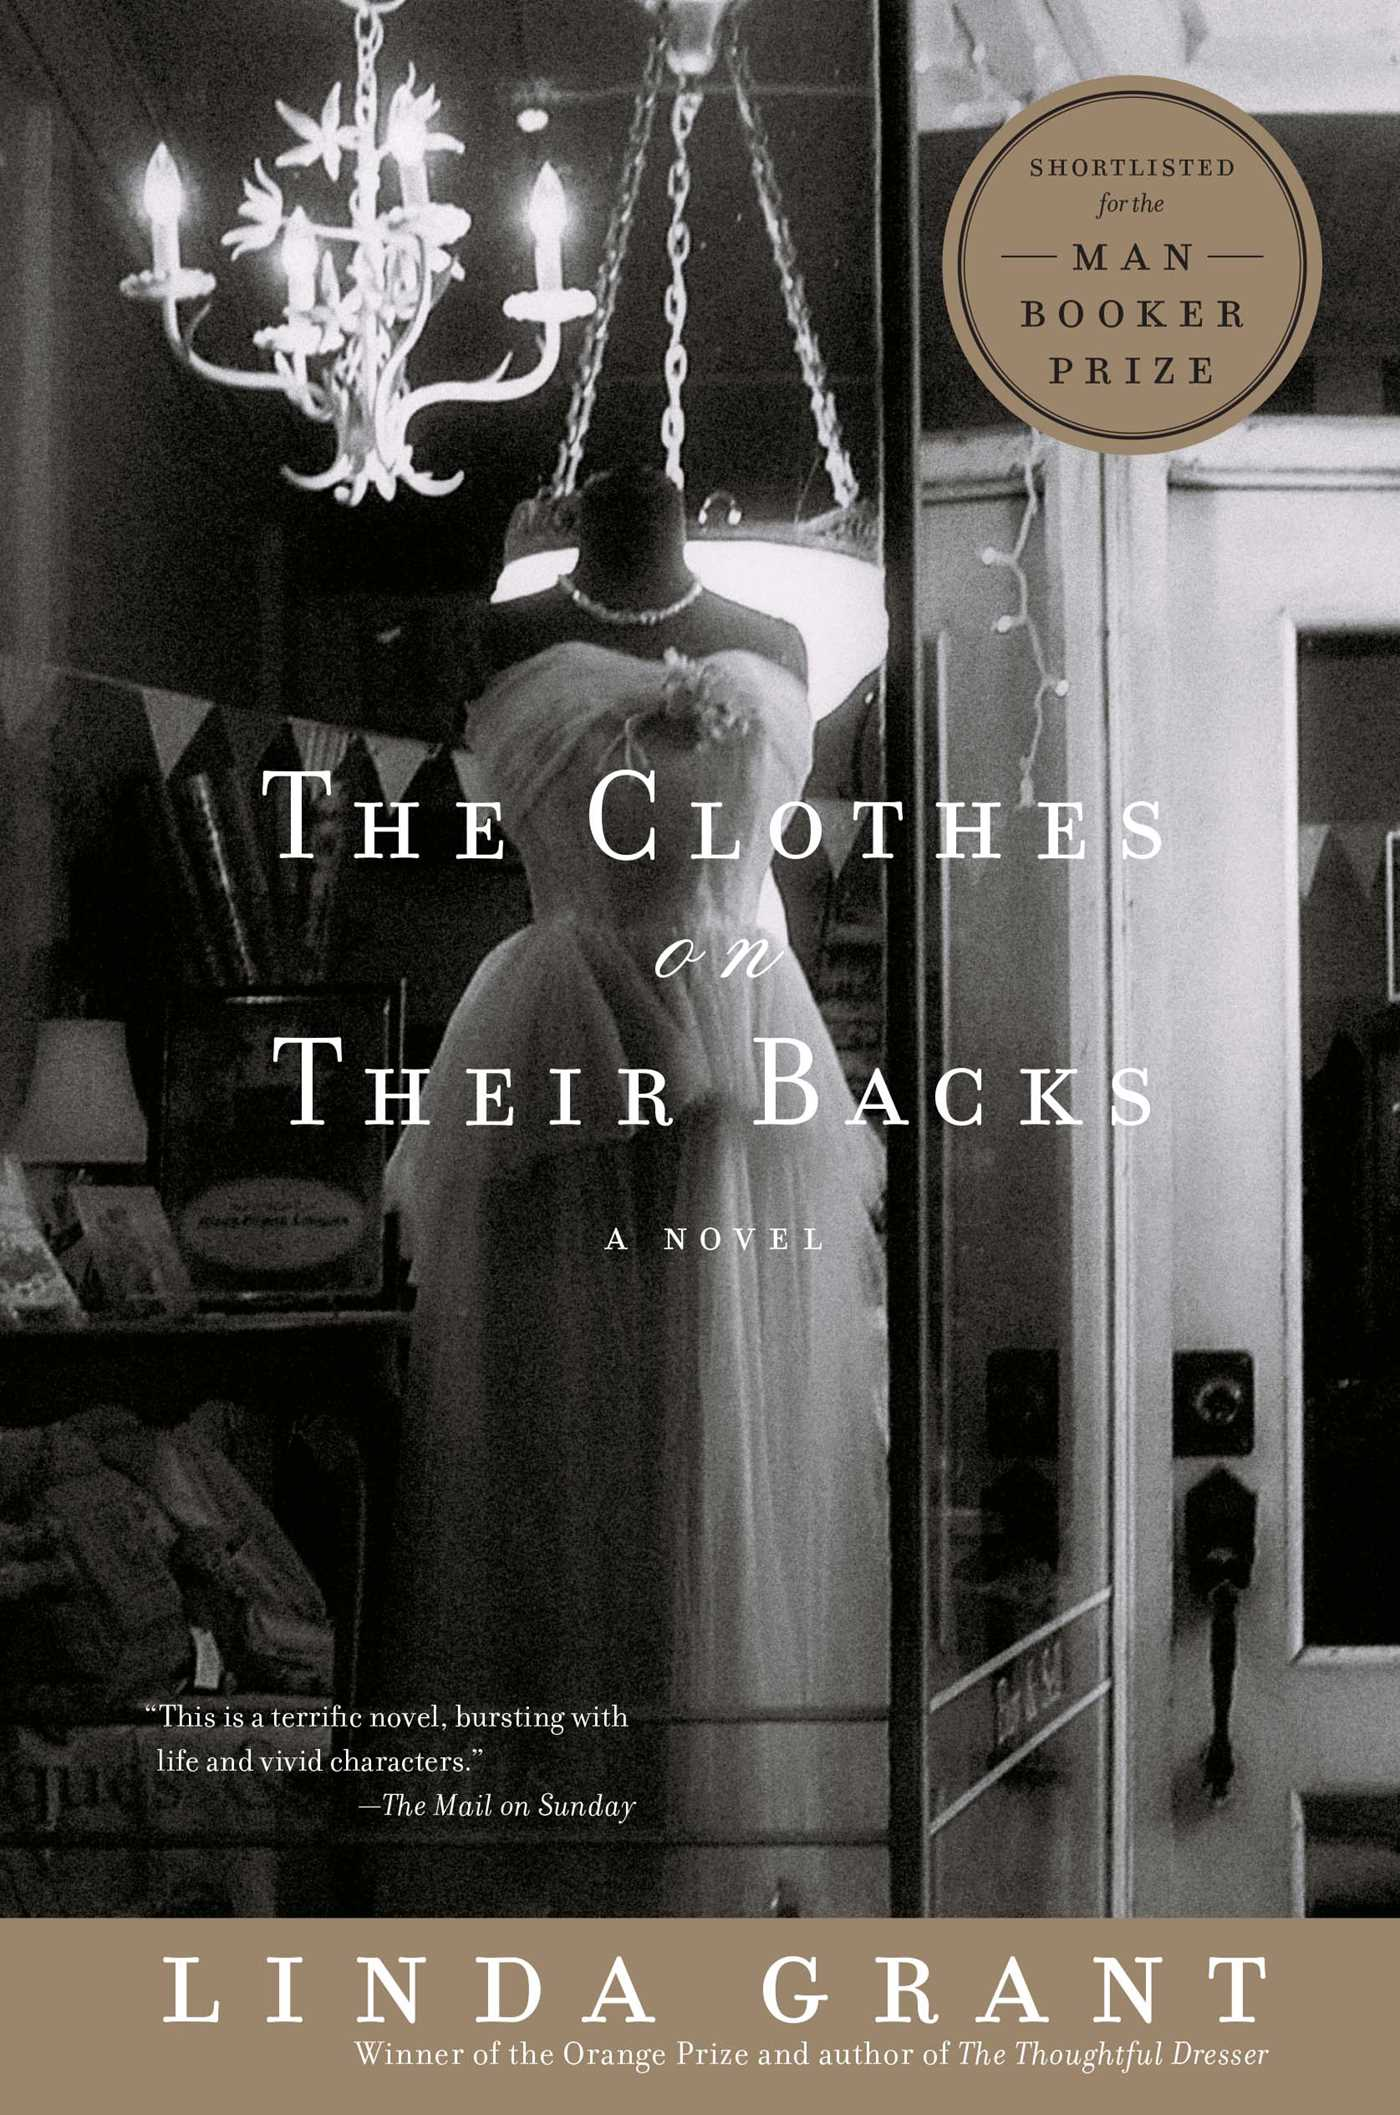 The-clothes-on-their-backs-9781439142363_hr